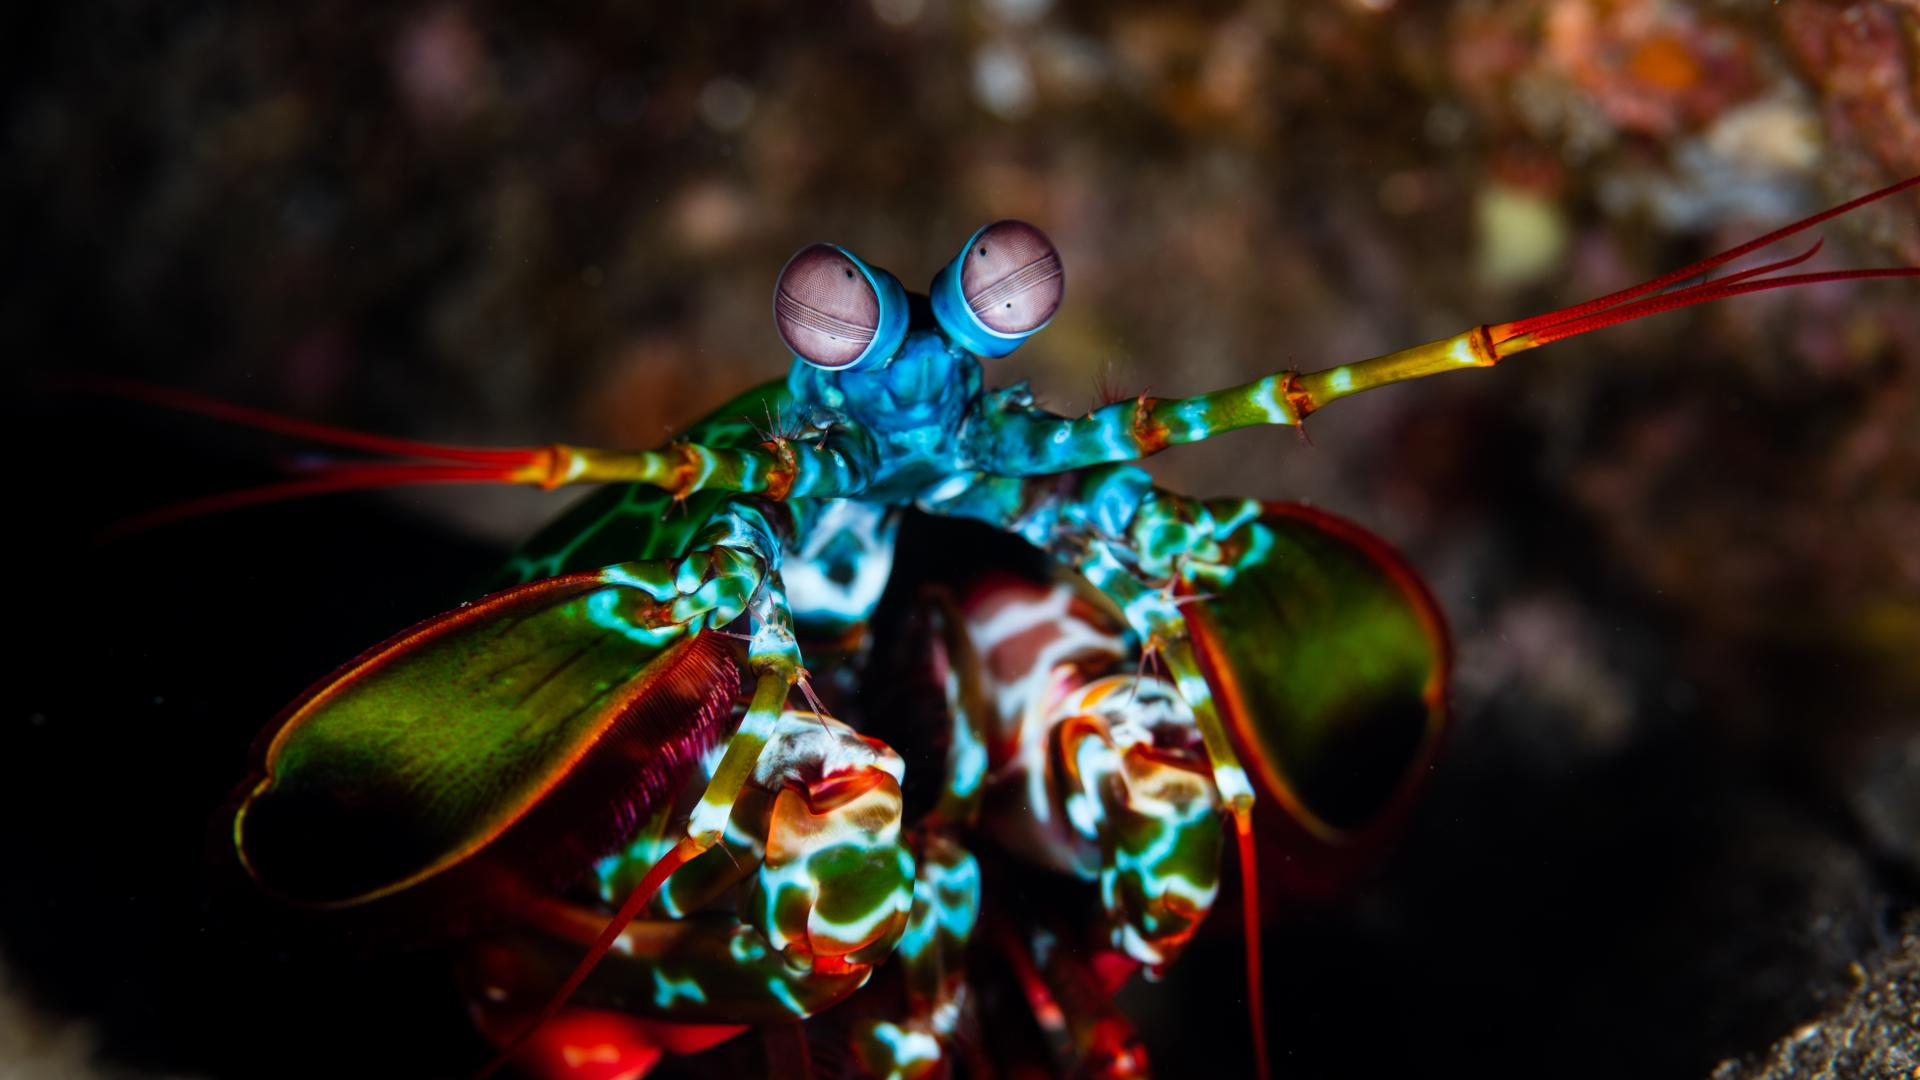 A Peacock mantis shrimp on a coral reef in Indonesia.